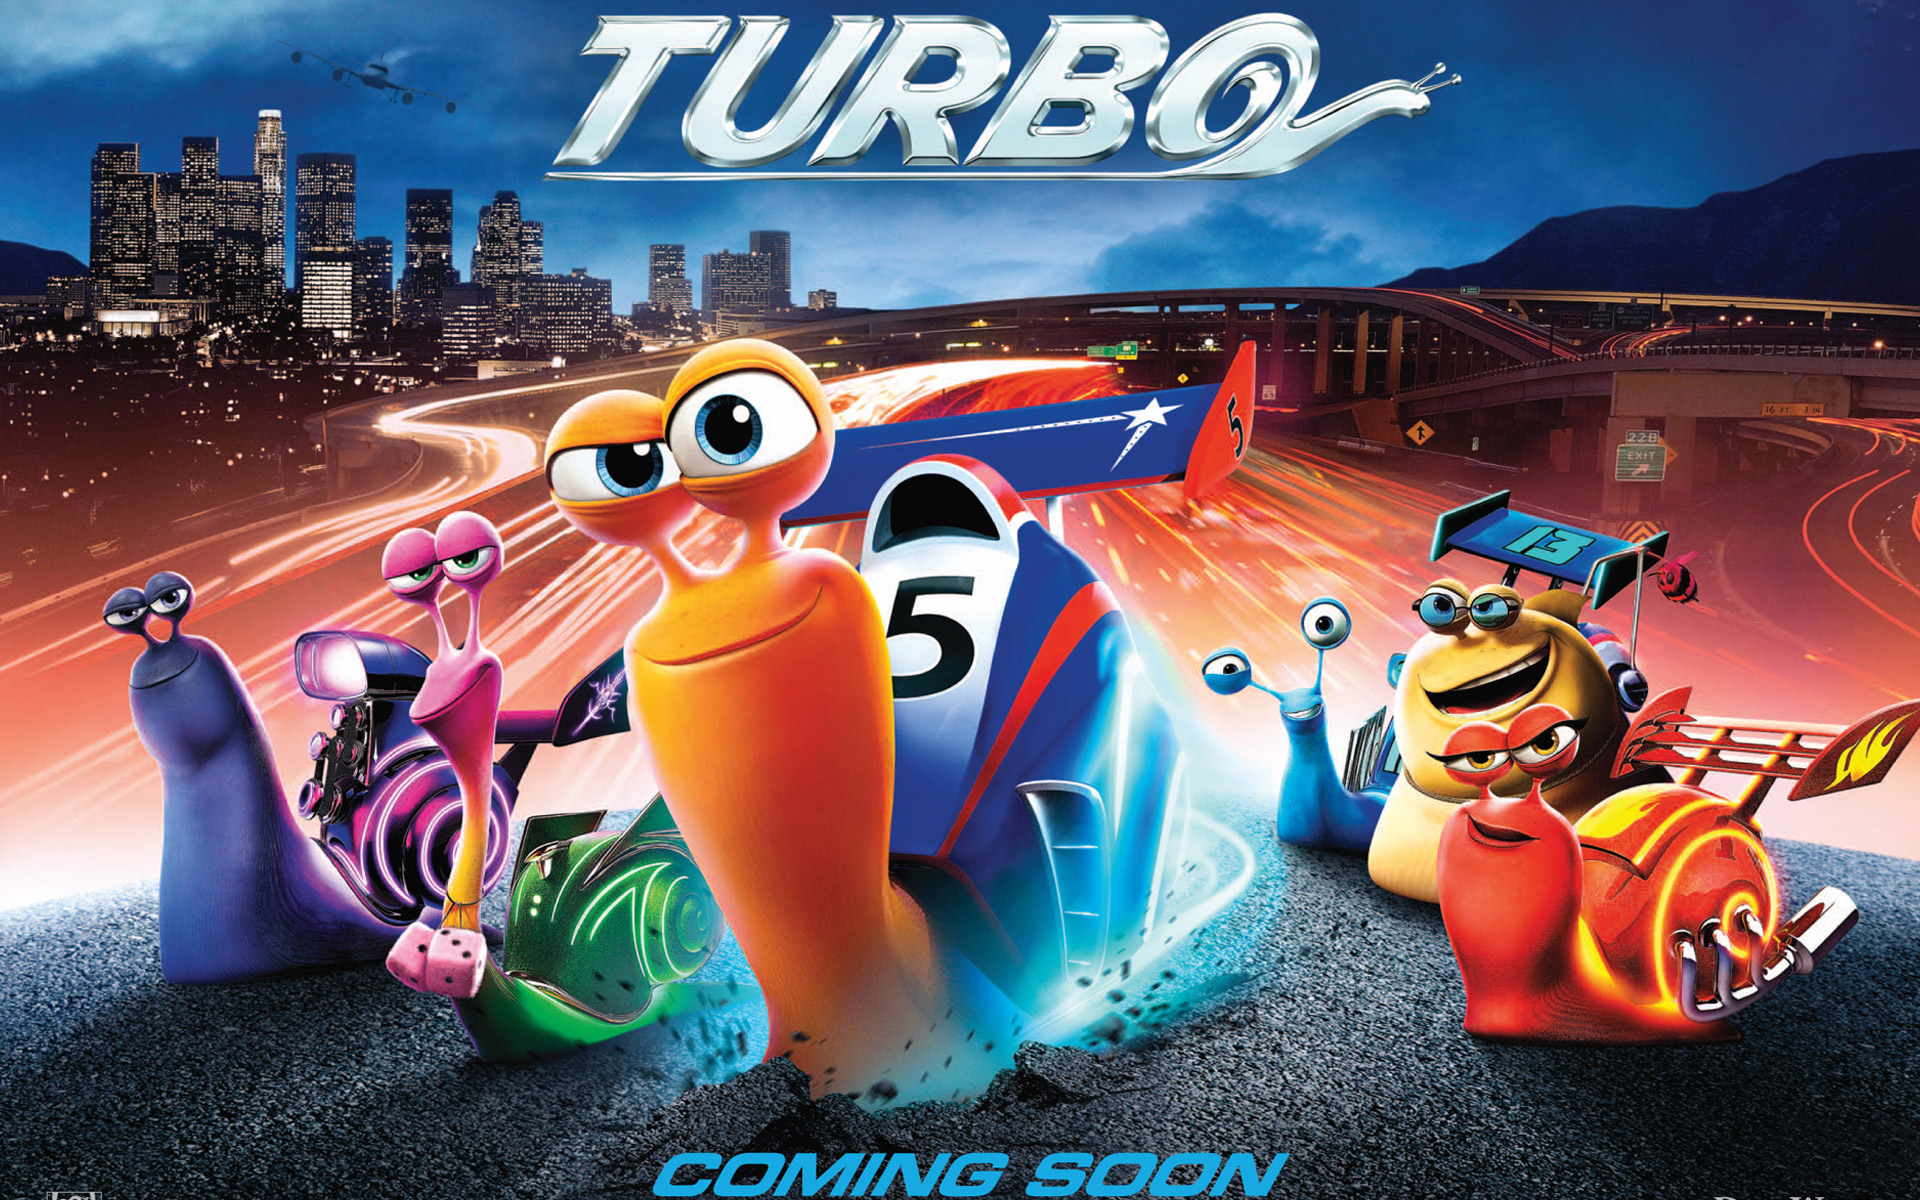 Free Turbo Wallpaper